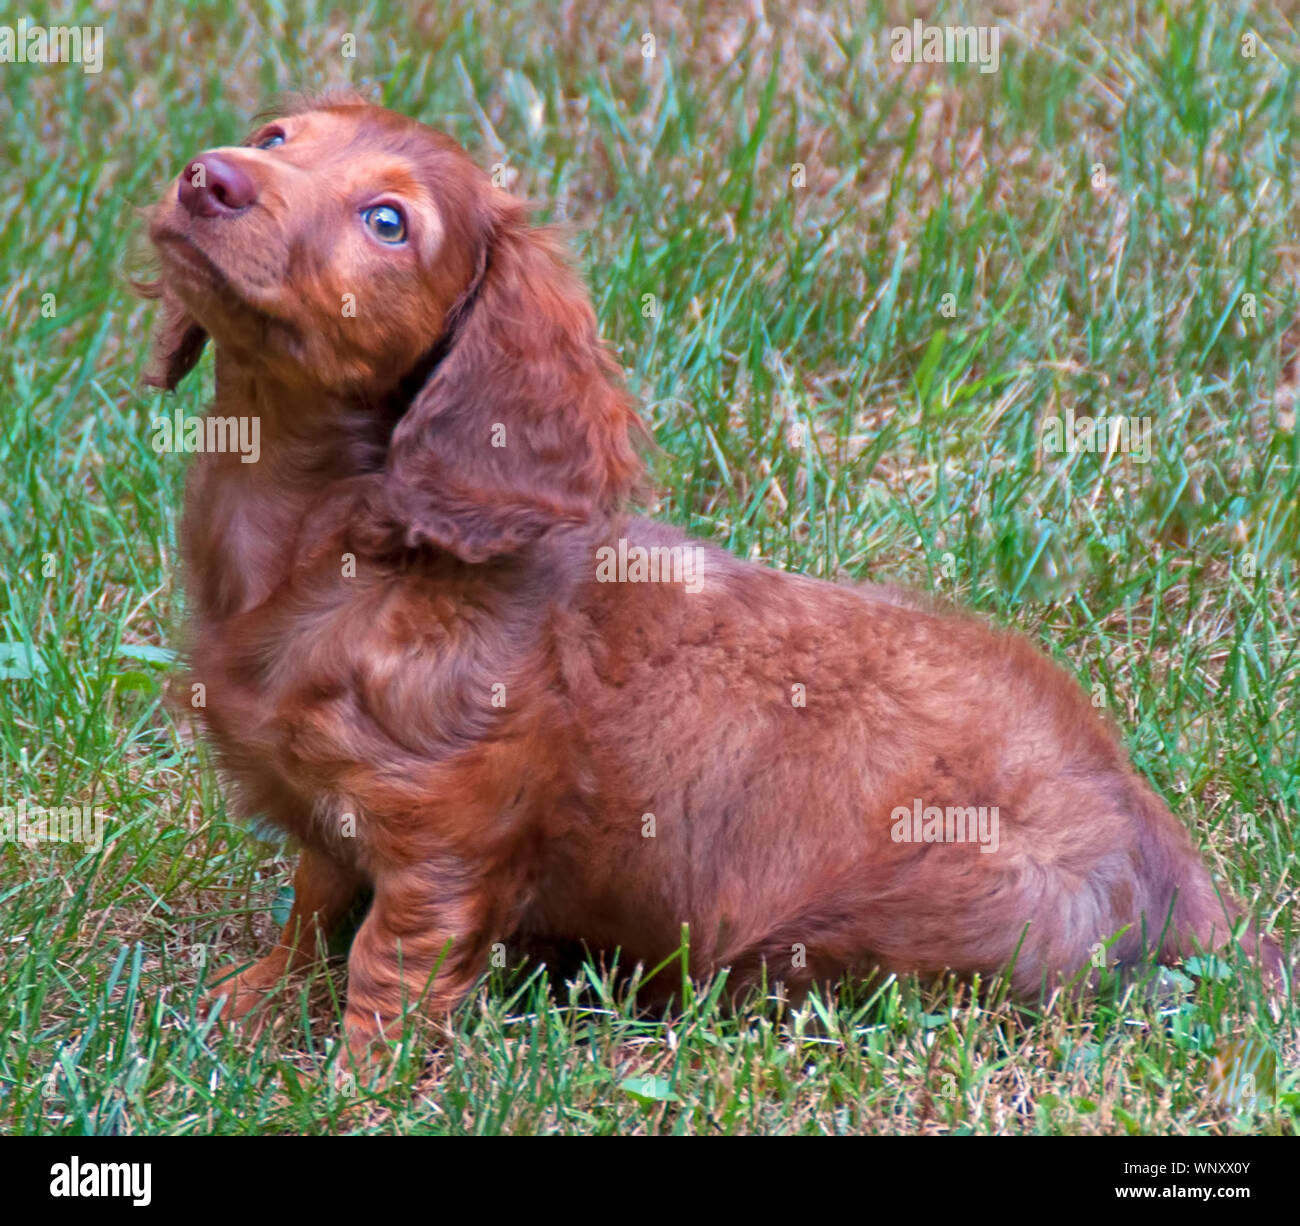 A Photograph Of A Chocolate Longhair Dachshund Puppy Sitting In The Grass Stock Photo Alamy